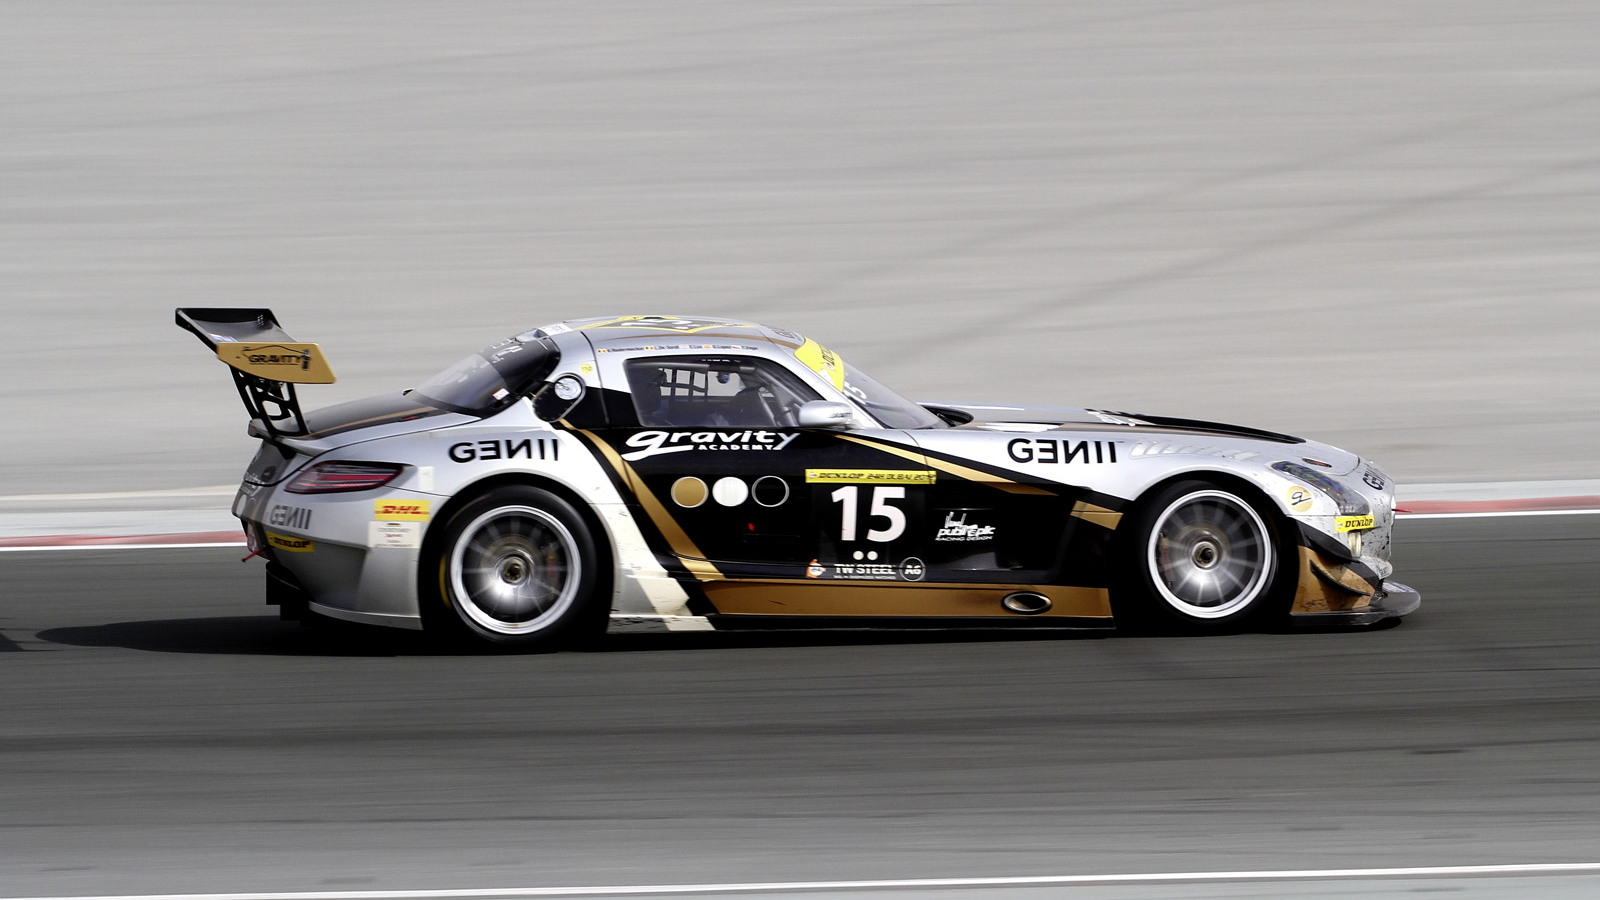 Mercedes-Benz SLS AMG GT3 at the 2012 Dubai 24 Hours race